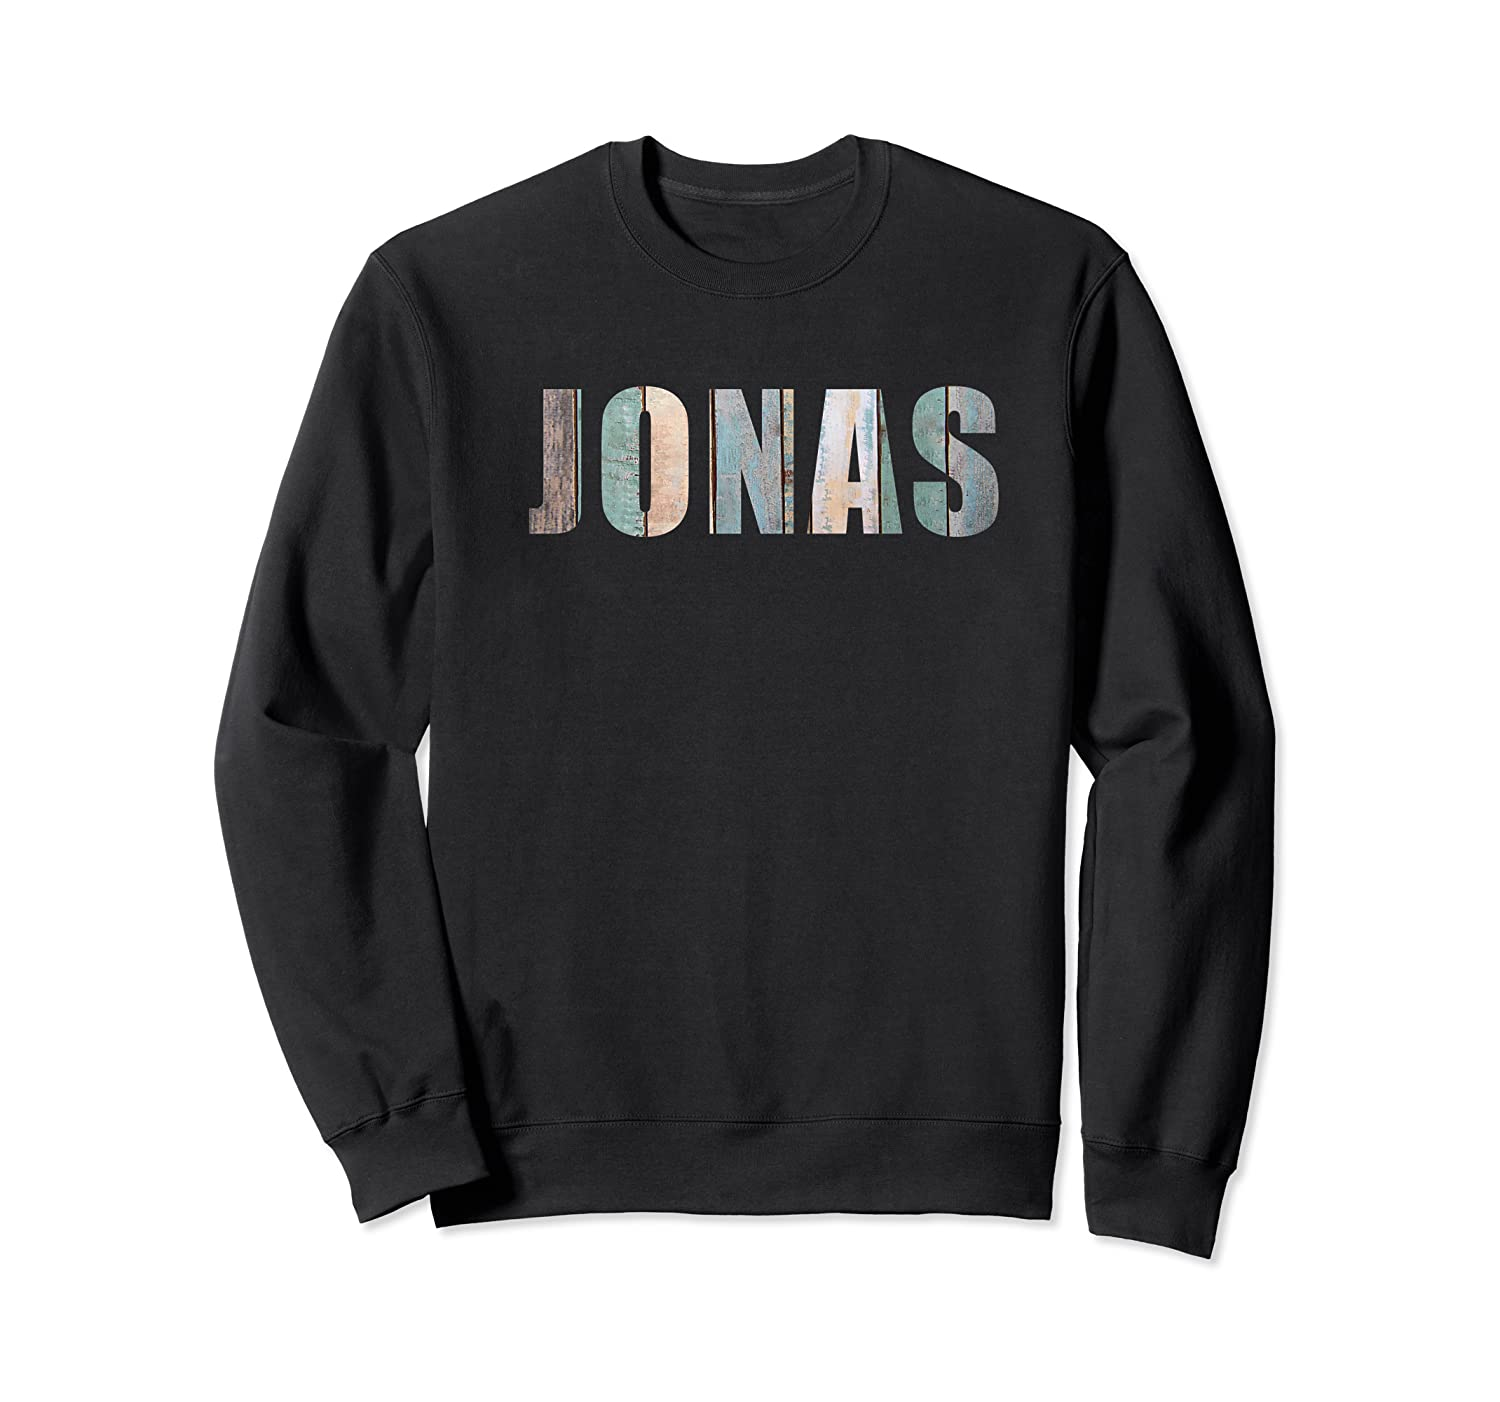 Jonas First Given Name Pride Funny Cool Premium T Shirt Crewneck Sweater